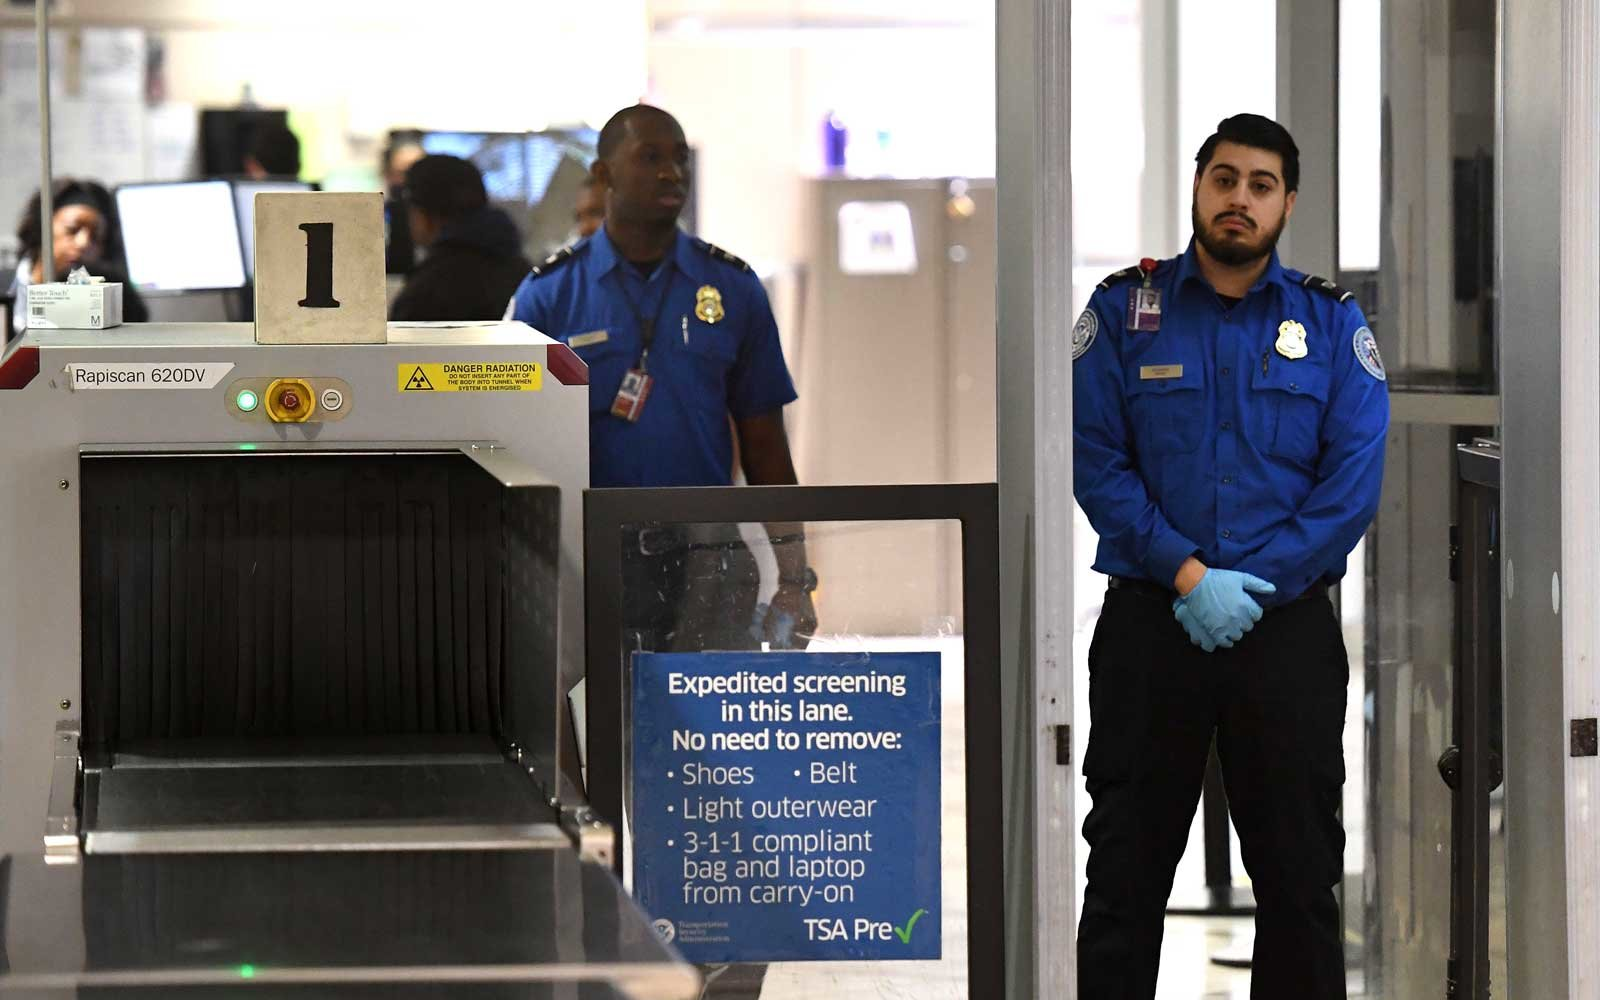 Transportation Security Administration officers (TSA) stand on duty at the departure area of the Los Angeles International Airport in Los Angeles, California, on 5 January, 2019